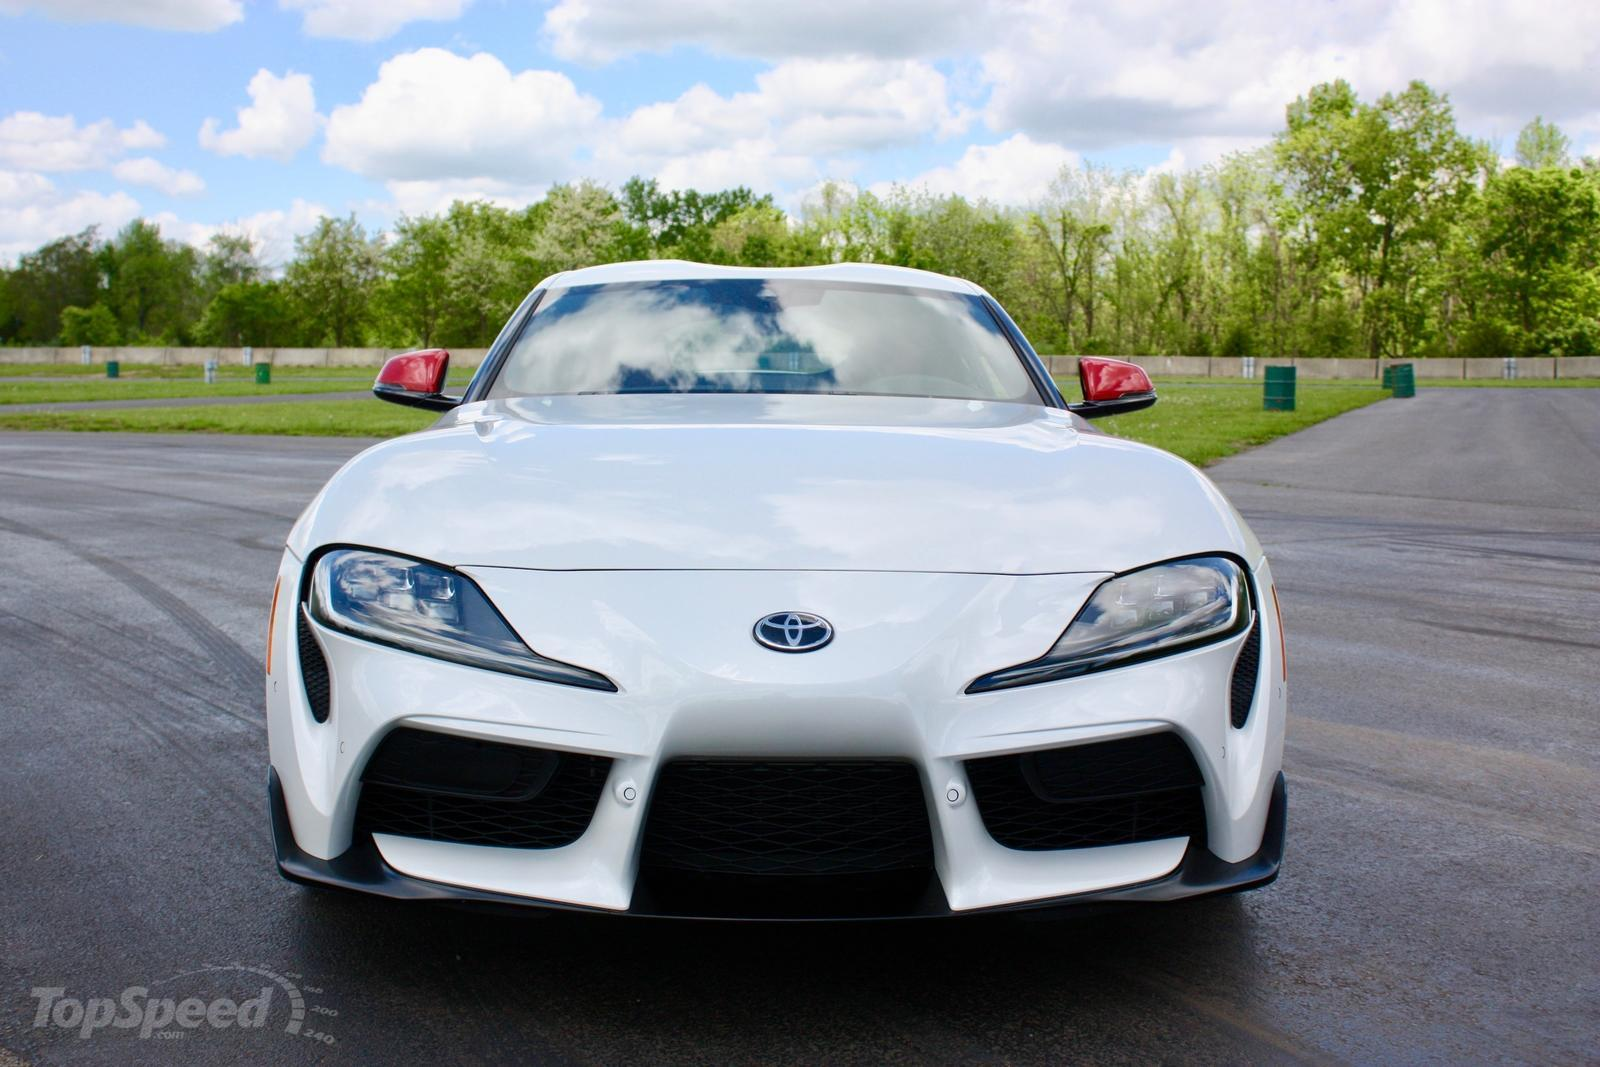 Toyota Highlander Vs Toyota 4Runner >> 2020 Toyota Supra Vs 2014 Toyota FT-1 Concept Pictures, Photos, Wallpapers. | Top Speed